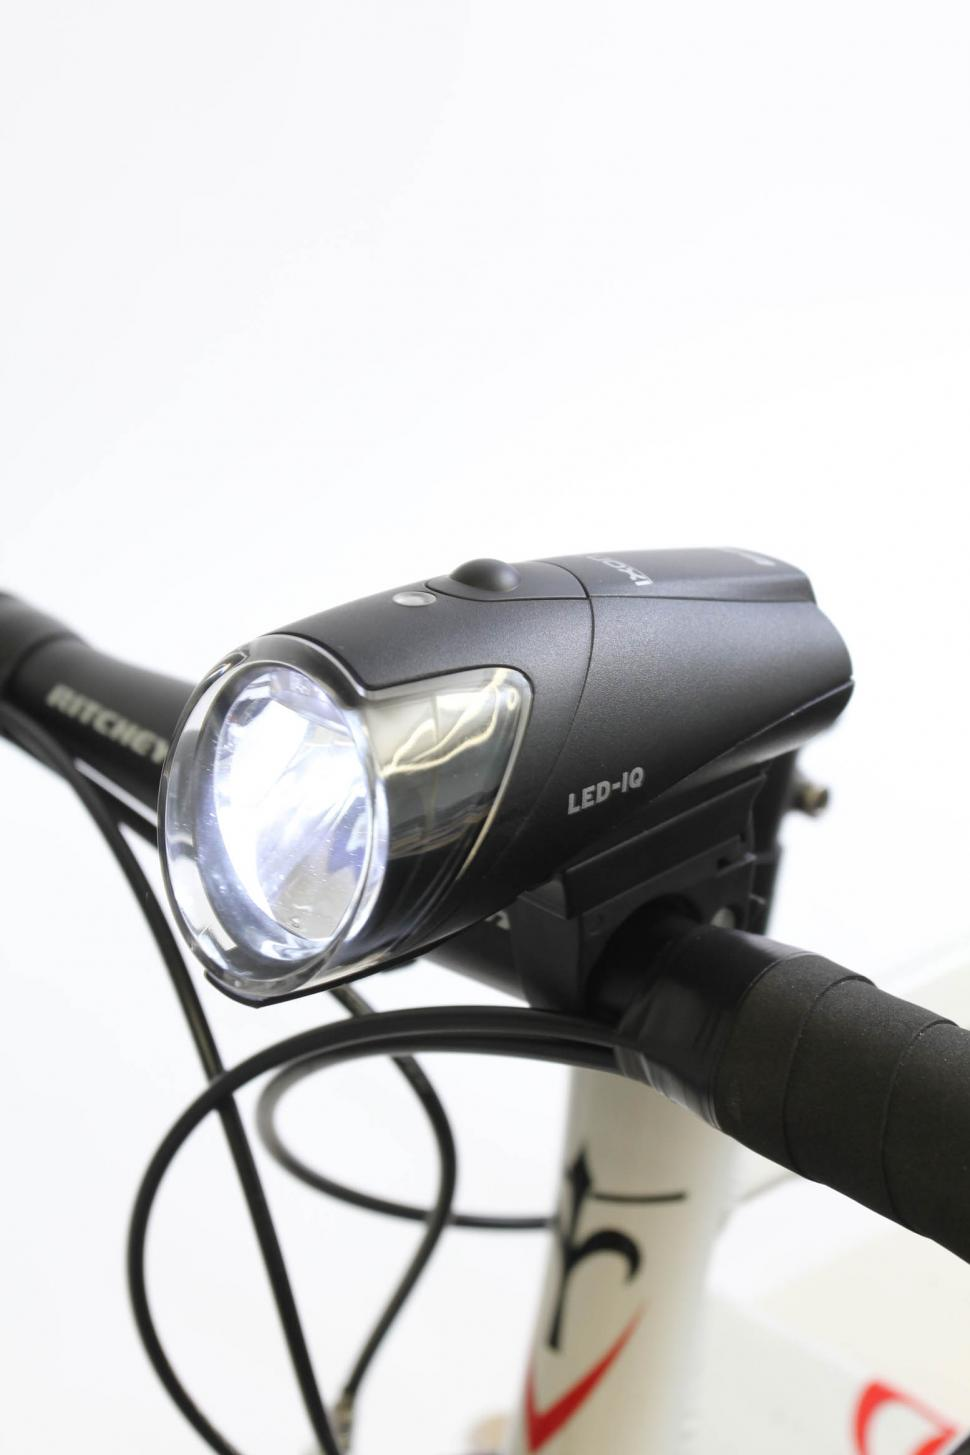 Ixon IQ rechargable front light - mounted